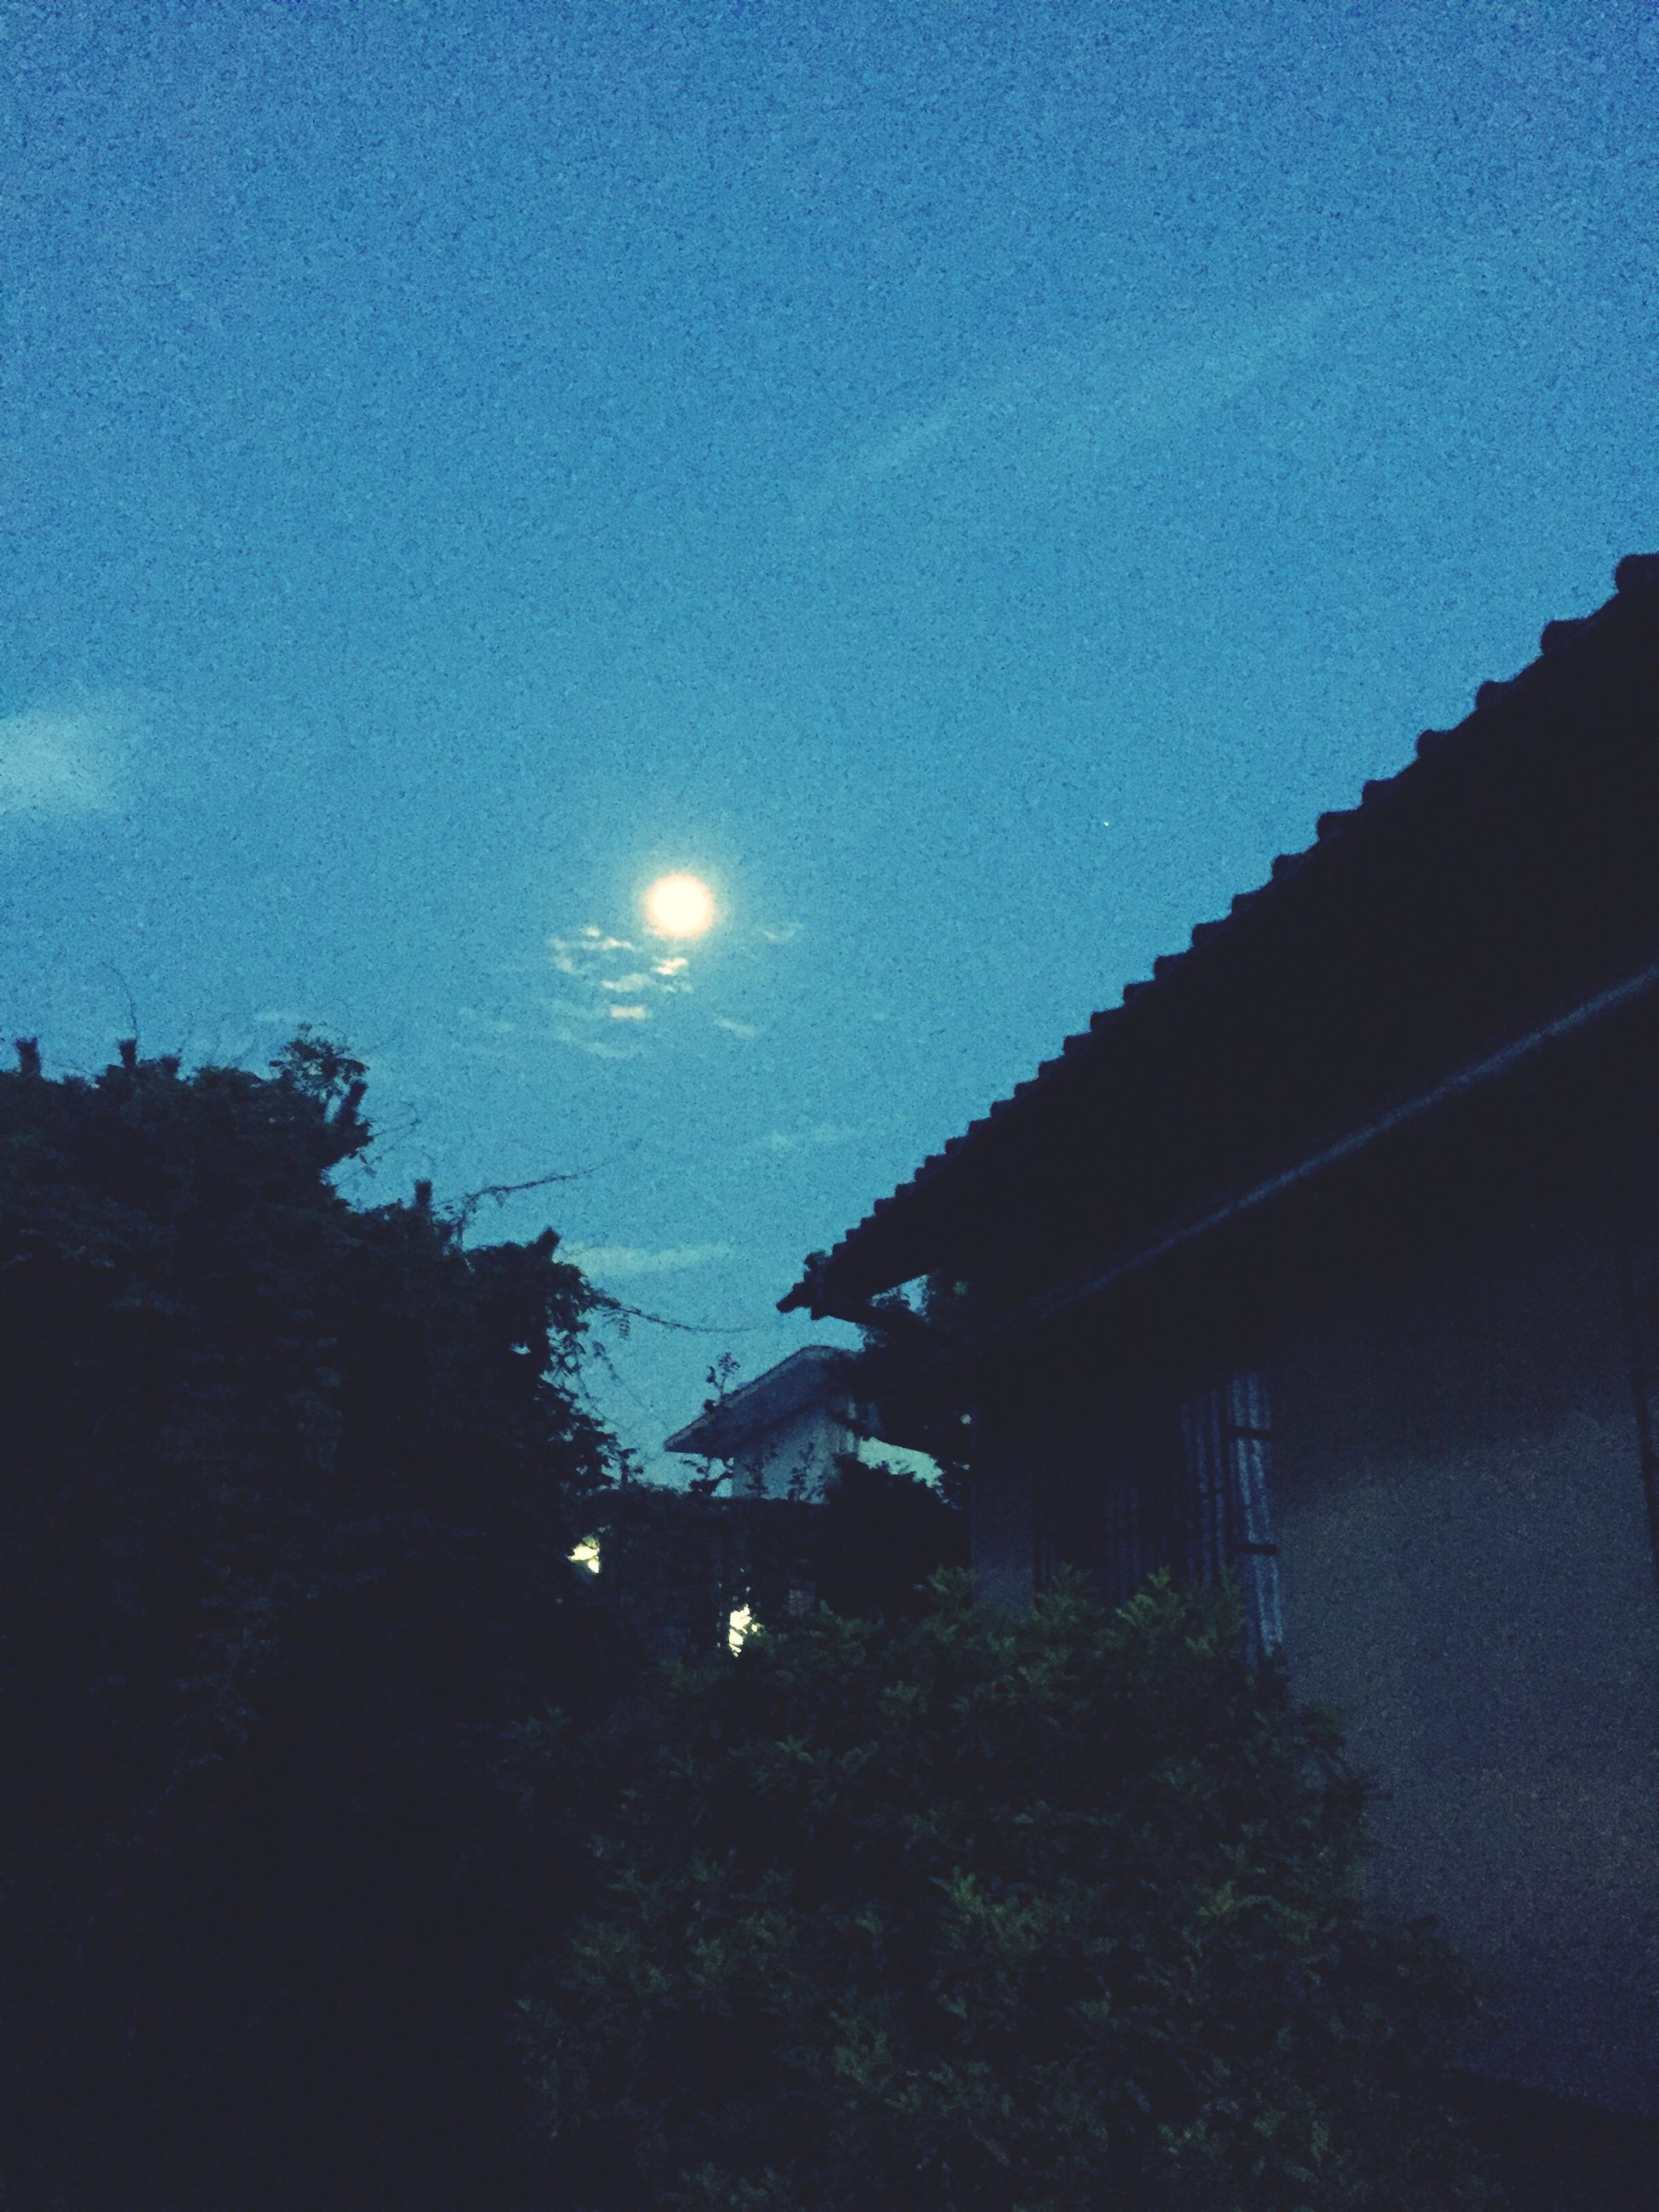 night, moon, sky, built structure, building exterior, architecture, tree, blue, low angle view, house, illuminated, nature, beauty in nature, tranquility, scenics, dusk, star - space, silhouette, astronomy, outdoors